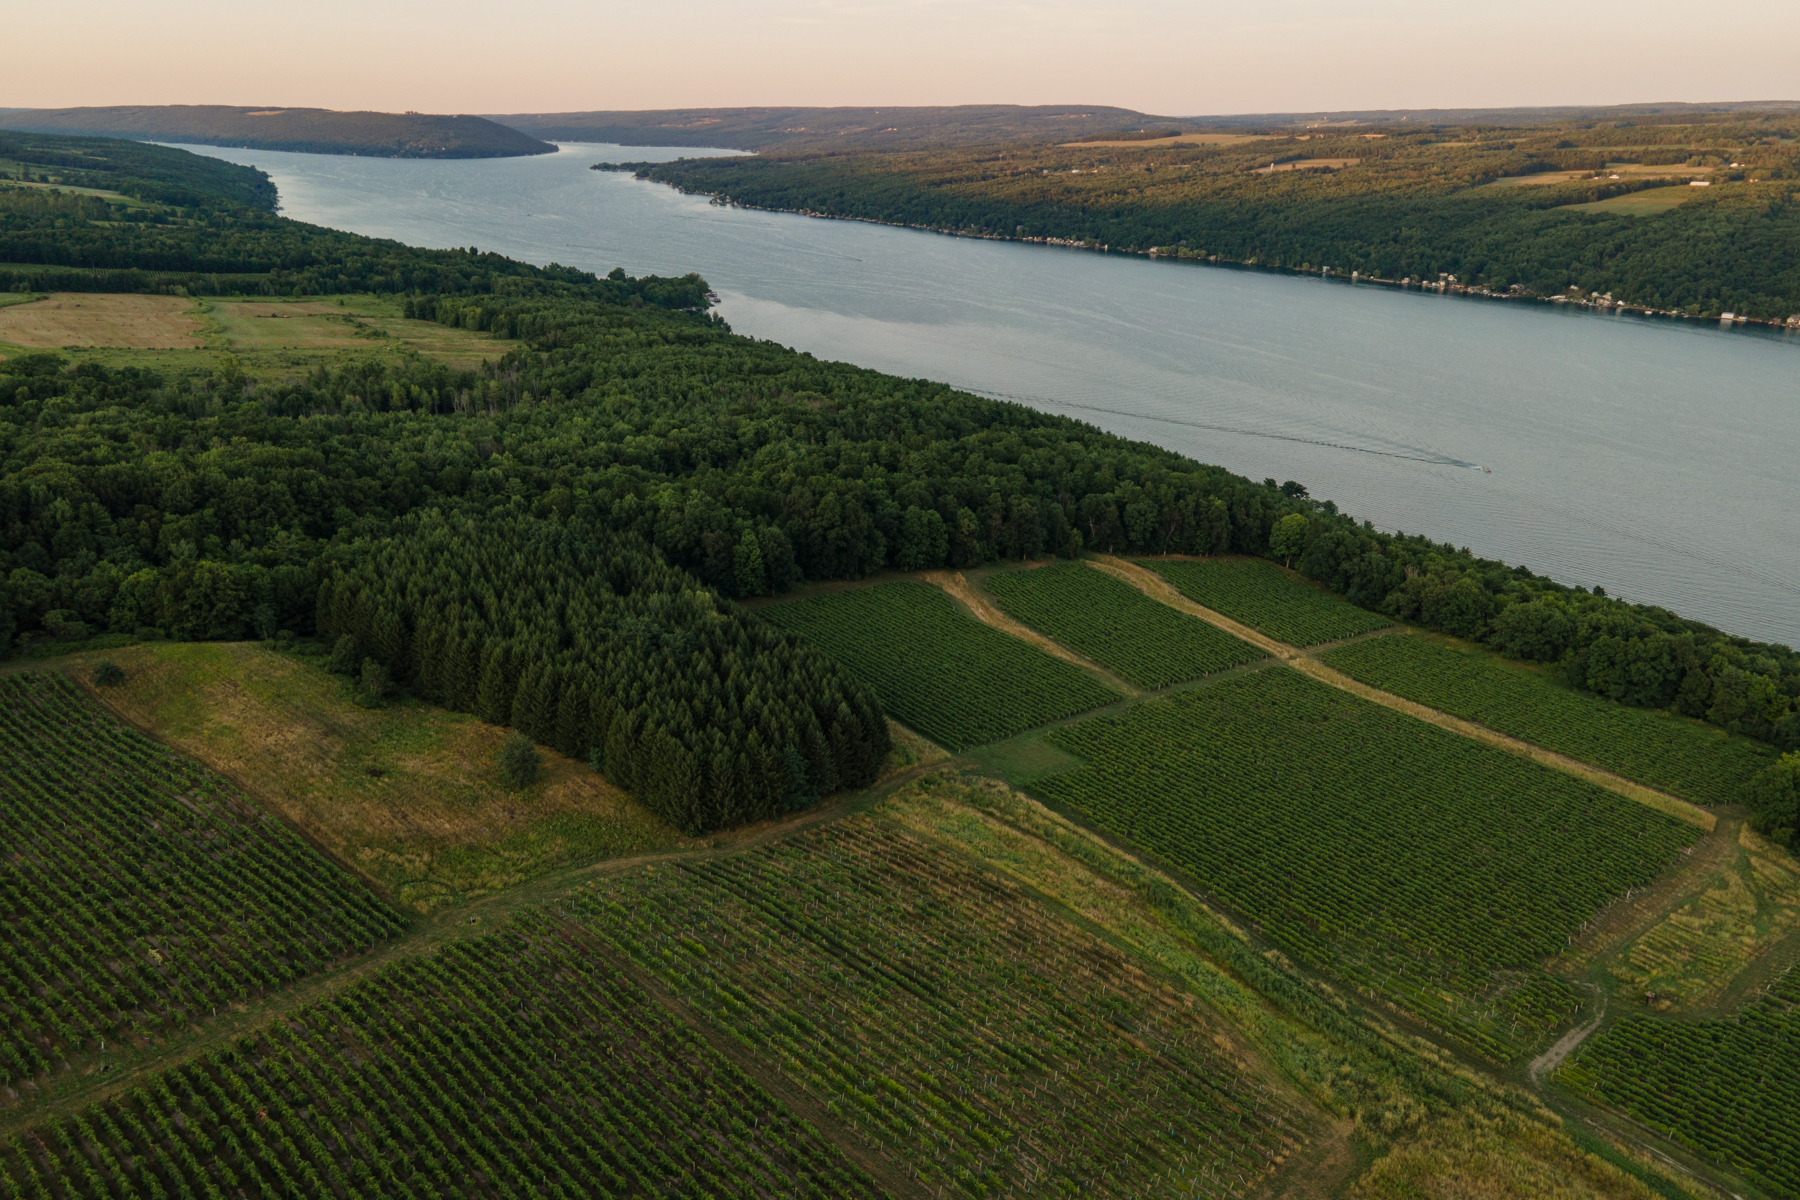 Destination: New York's Finger Lakes